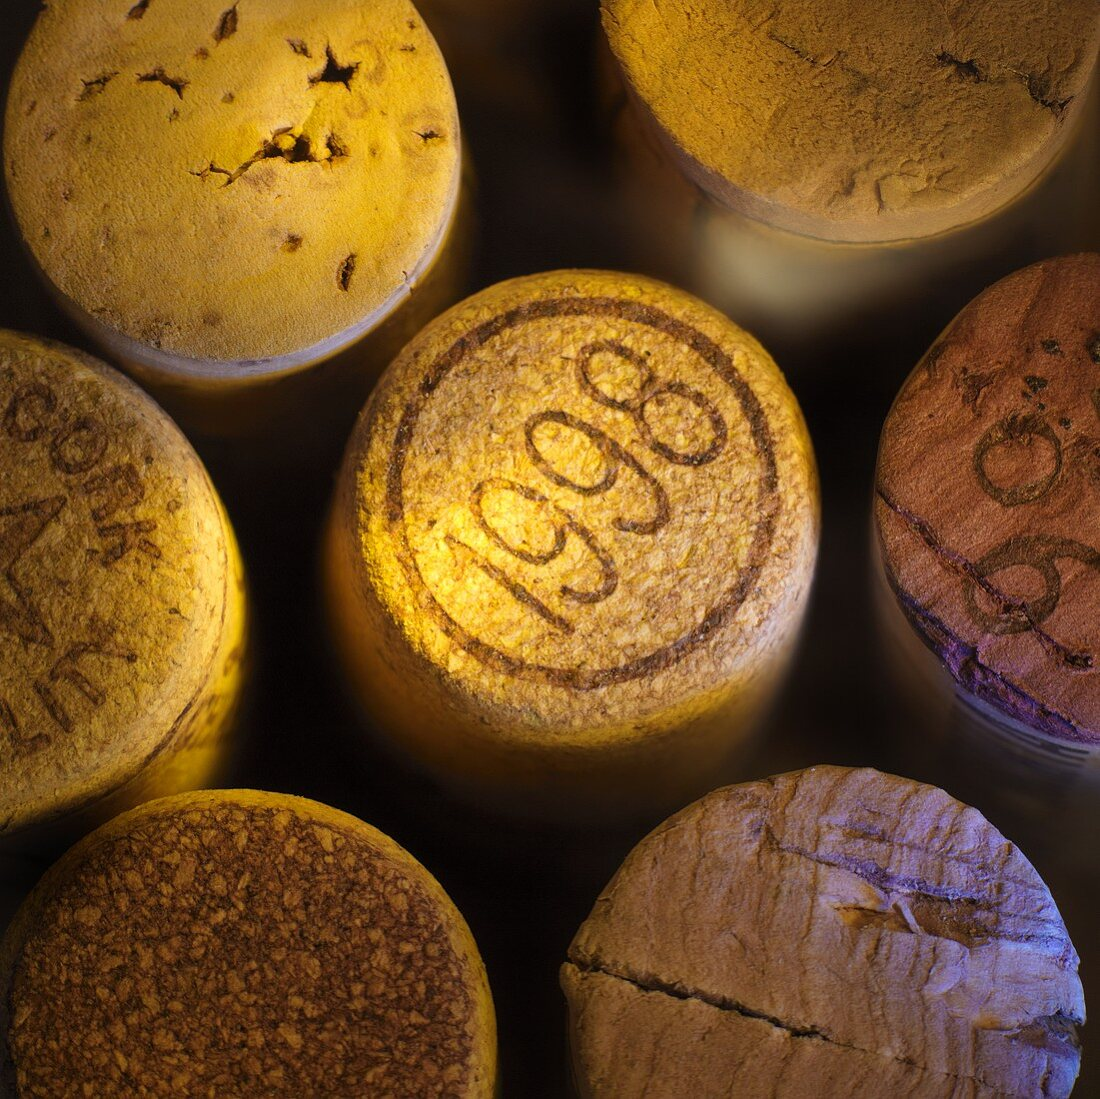 Several wine corks (overhead view)